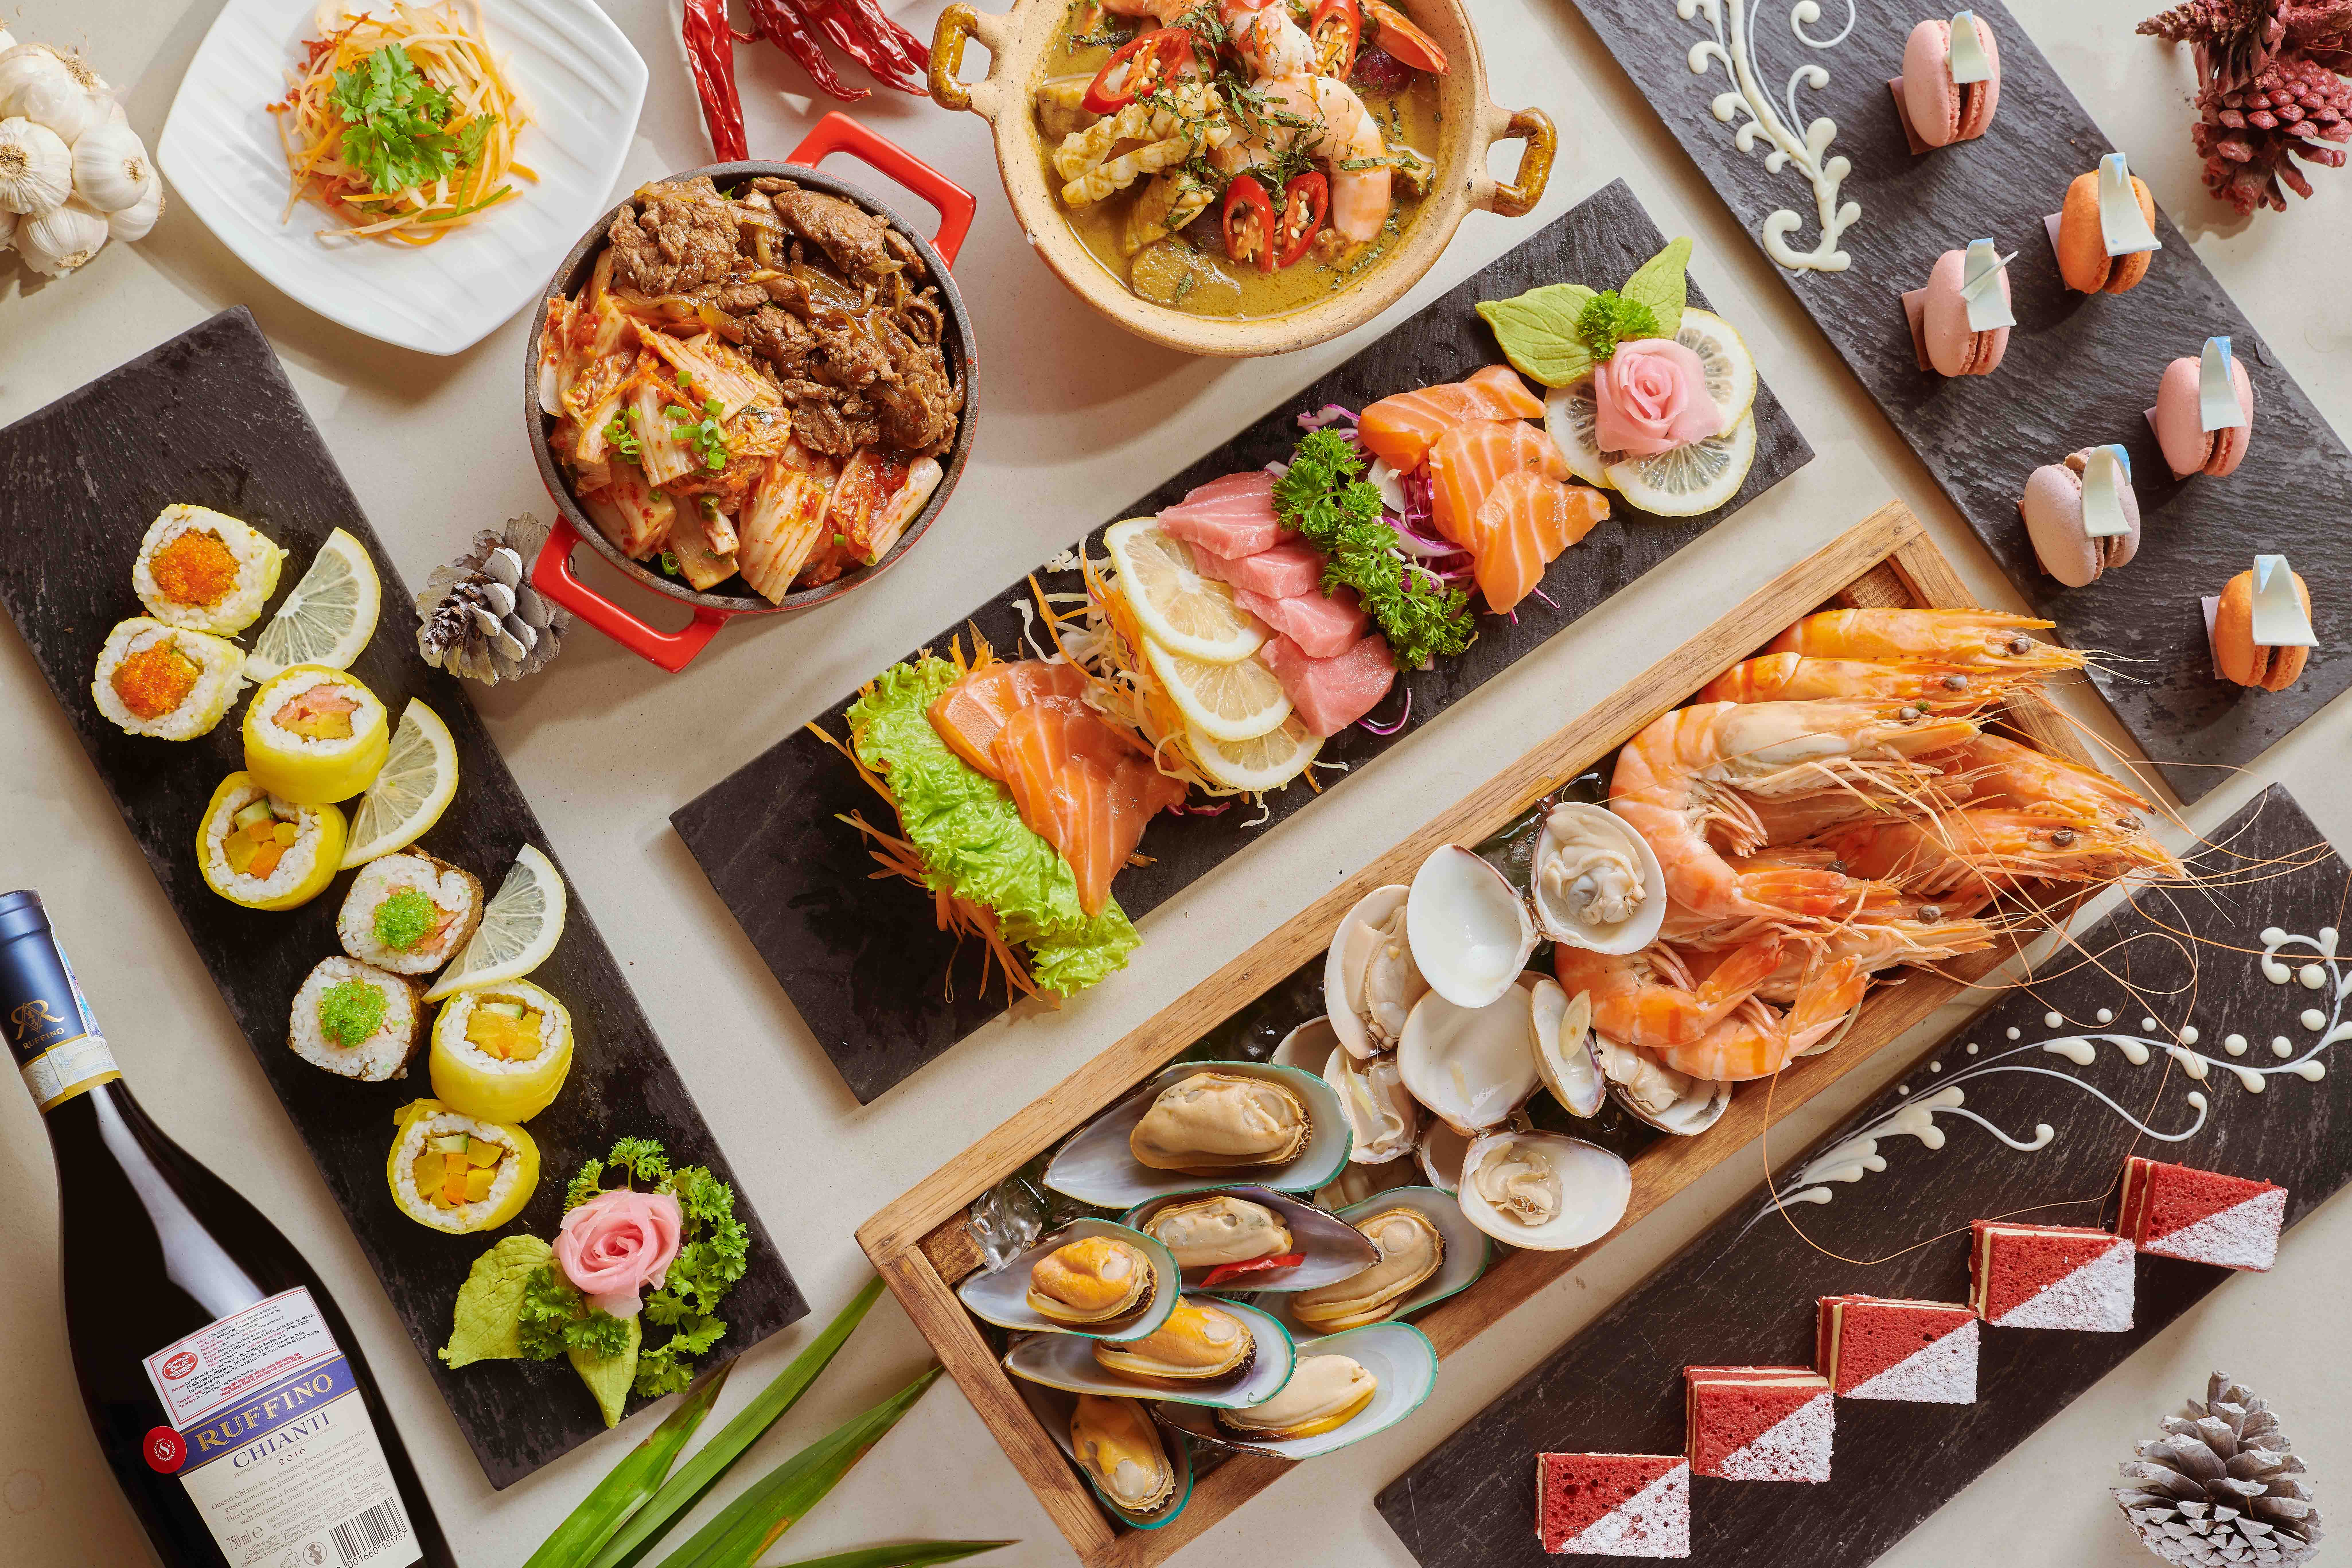 sheraton grand đà nẵng international gala buffet